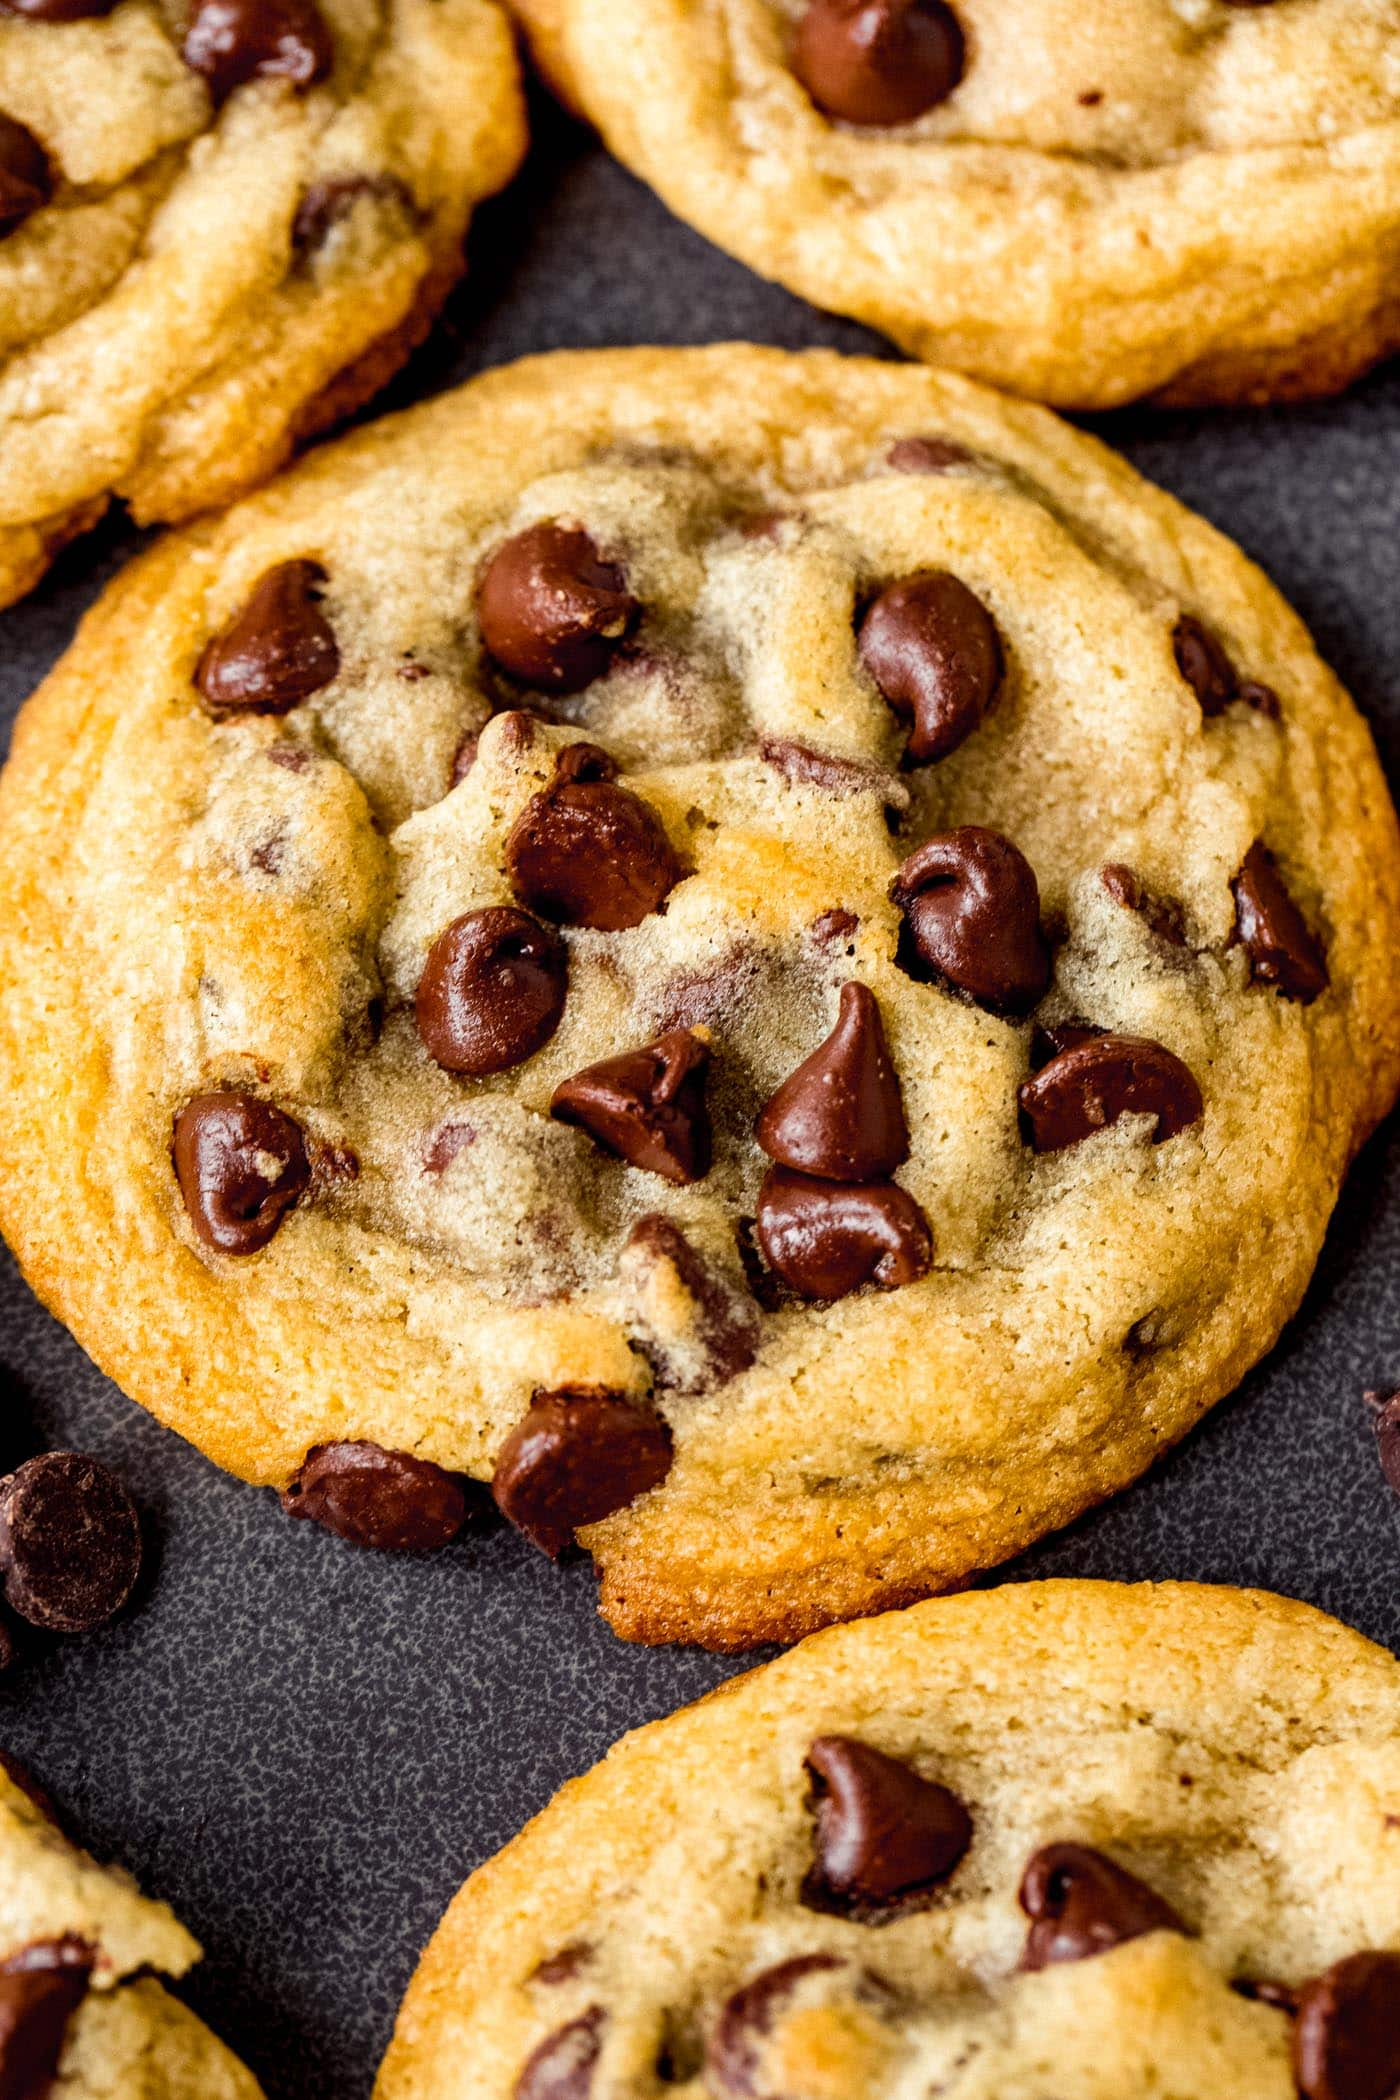 A close-up of a perfectly baked chocolate chip cookie on a cooling rack with other cookies. The cookie is packed with chocolate chips.